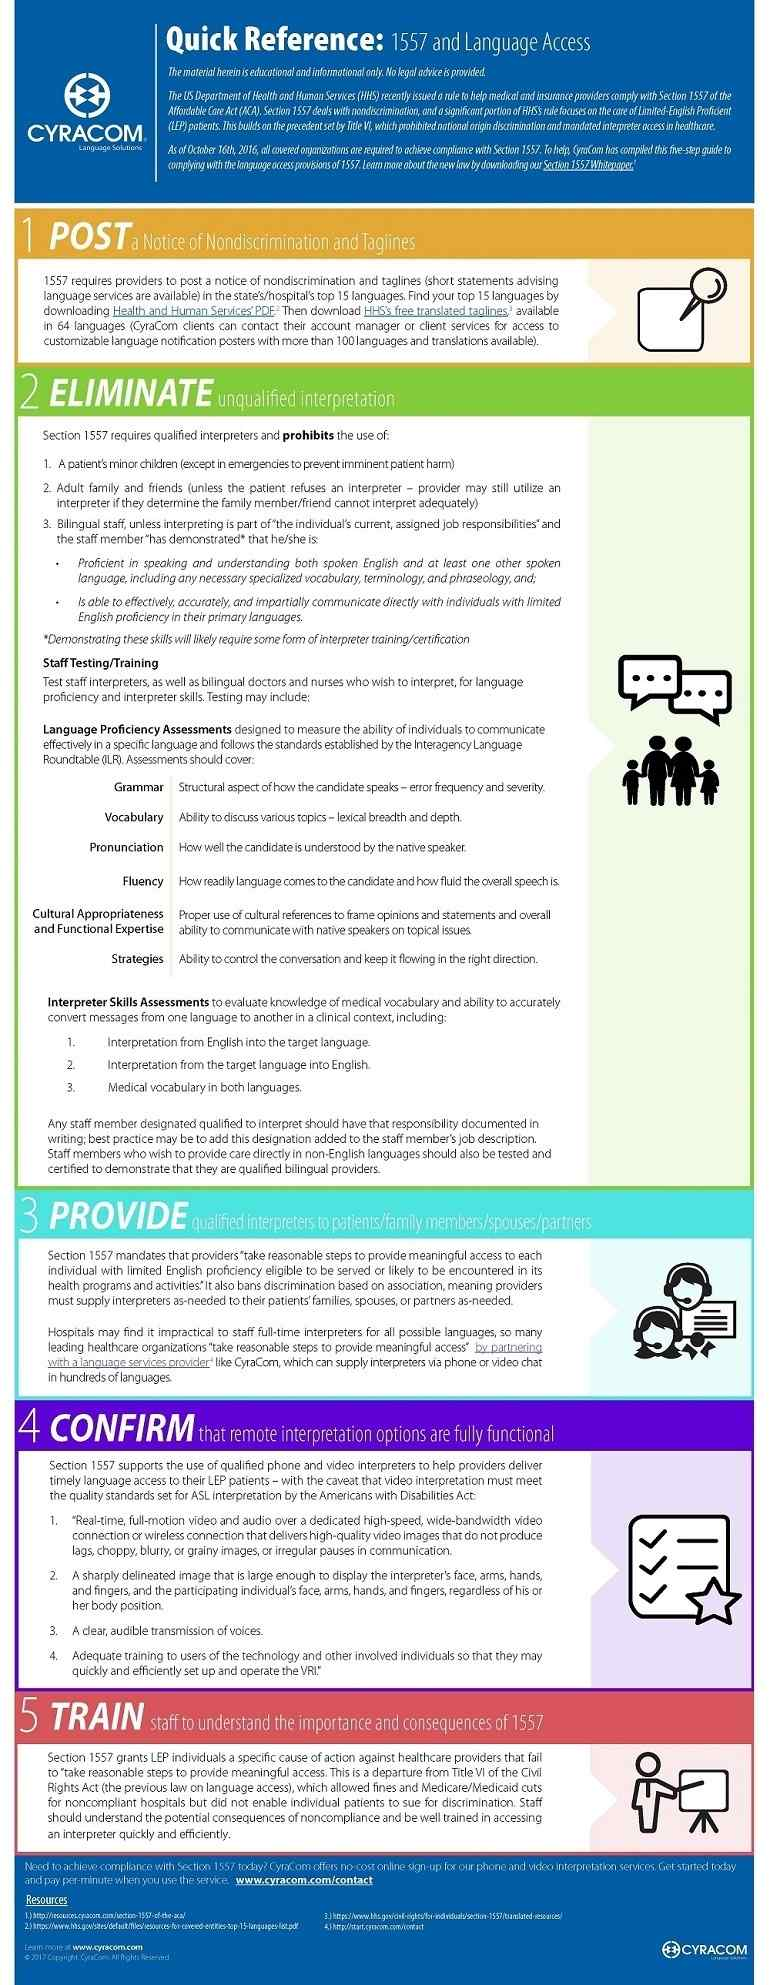 Quick reference 1557 and Language Access (one page) 1000px.jpg